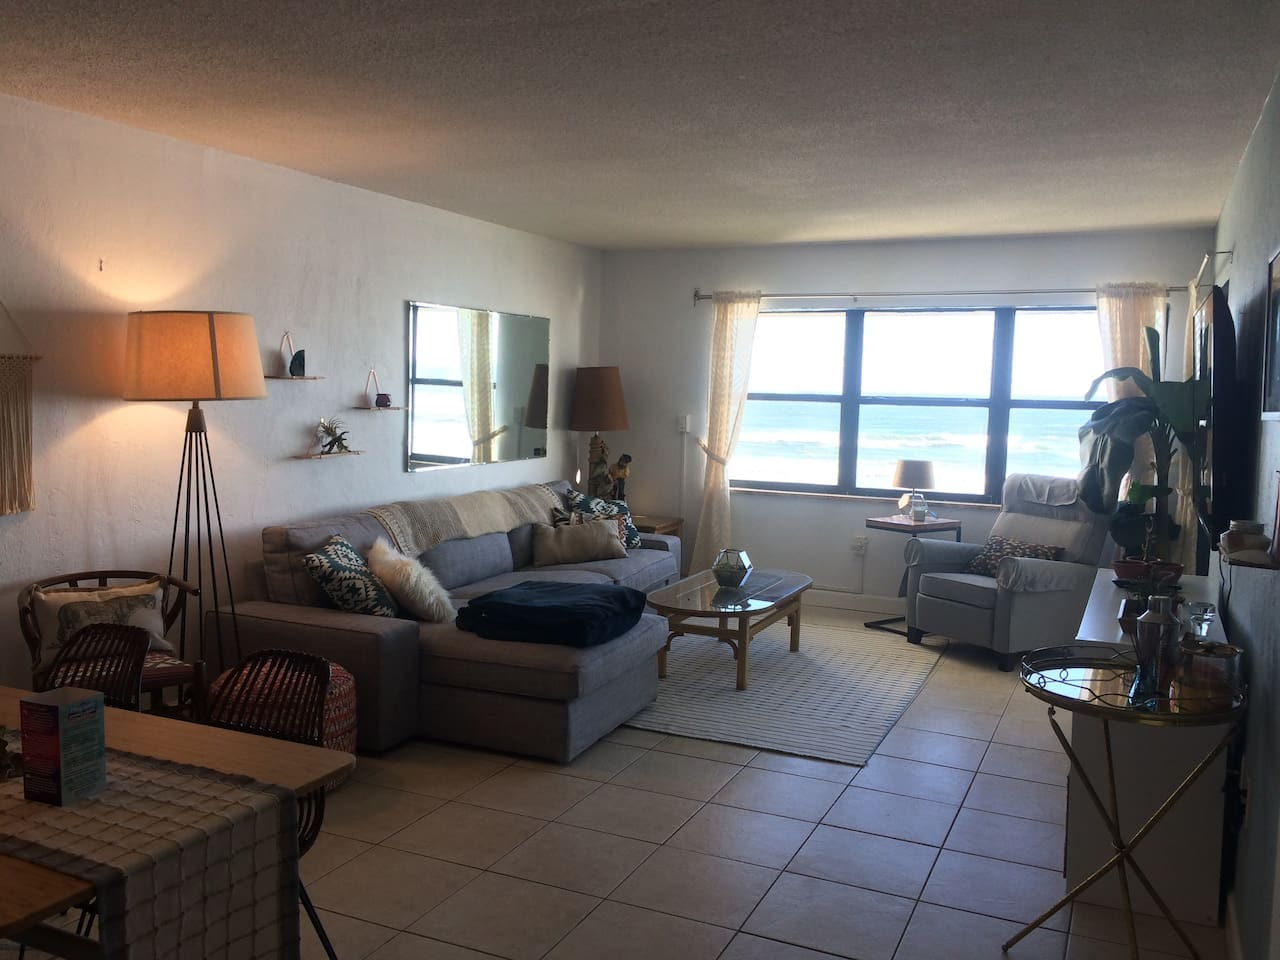 Our comfortable bungalow-style condo has an open concept floor plan for amazing ocean views from everywhere in the home.